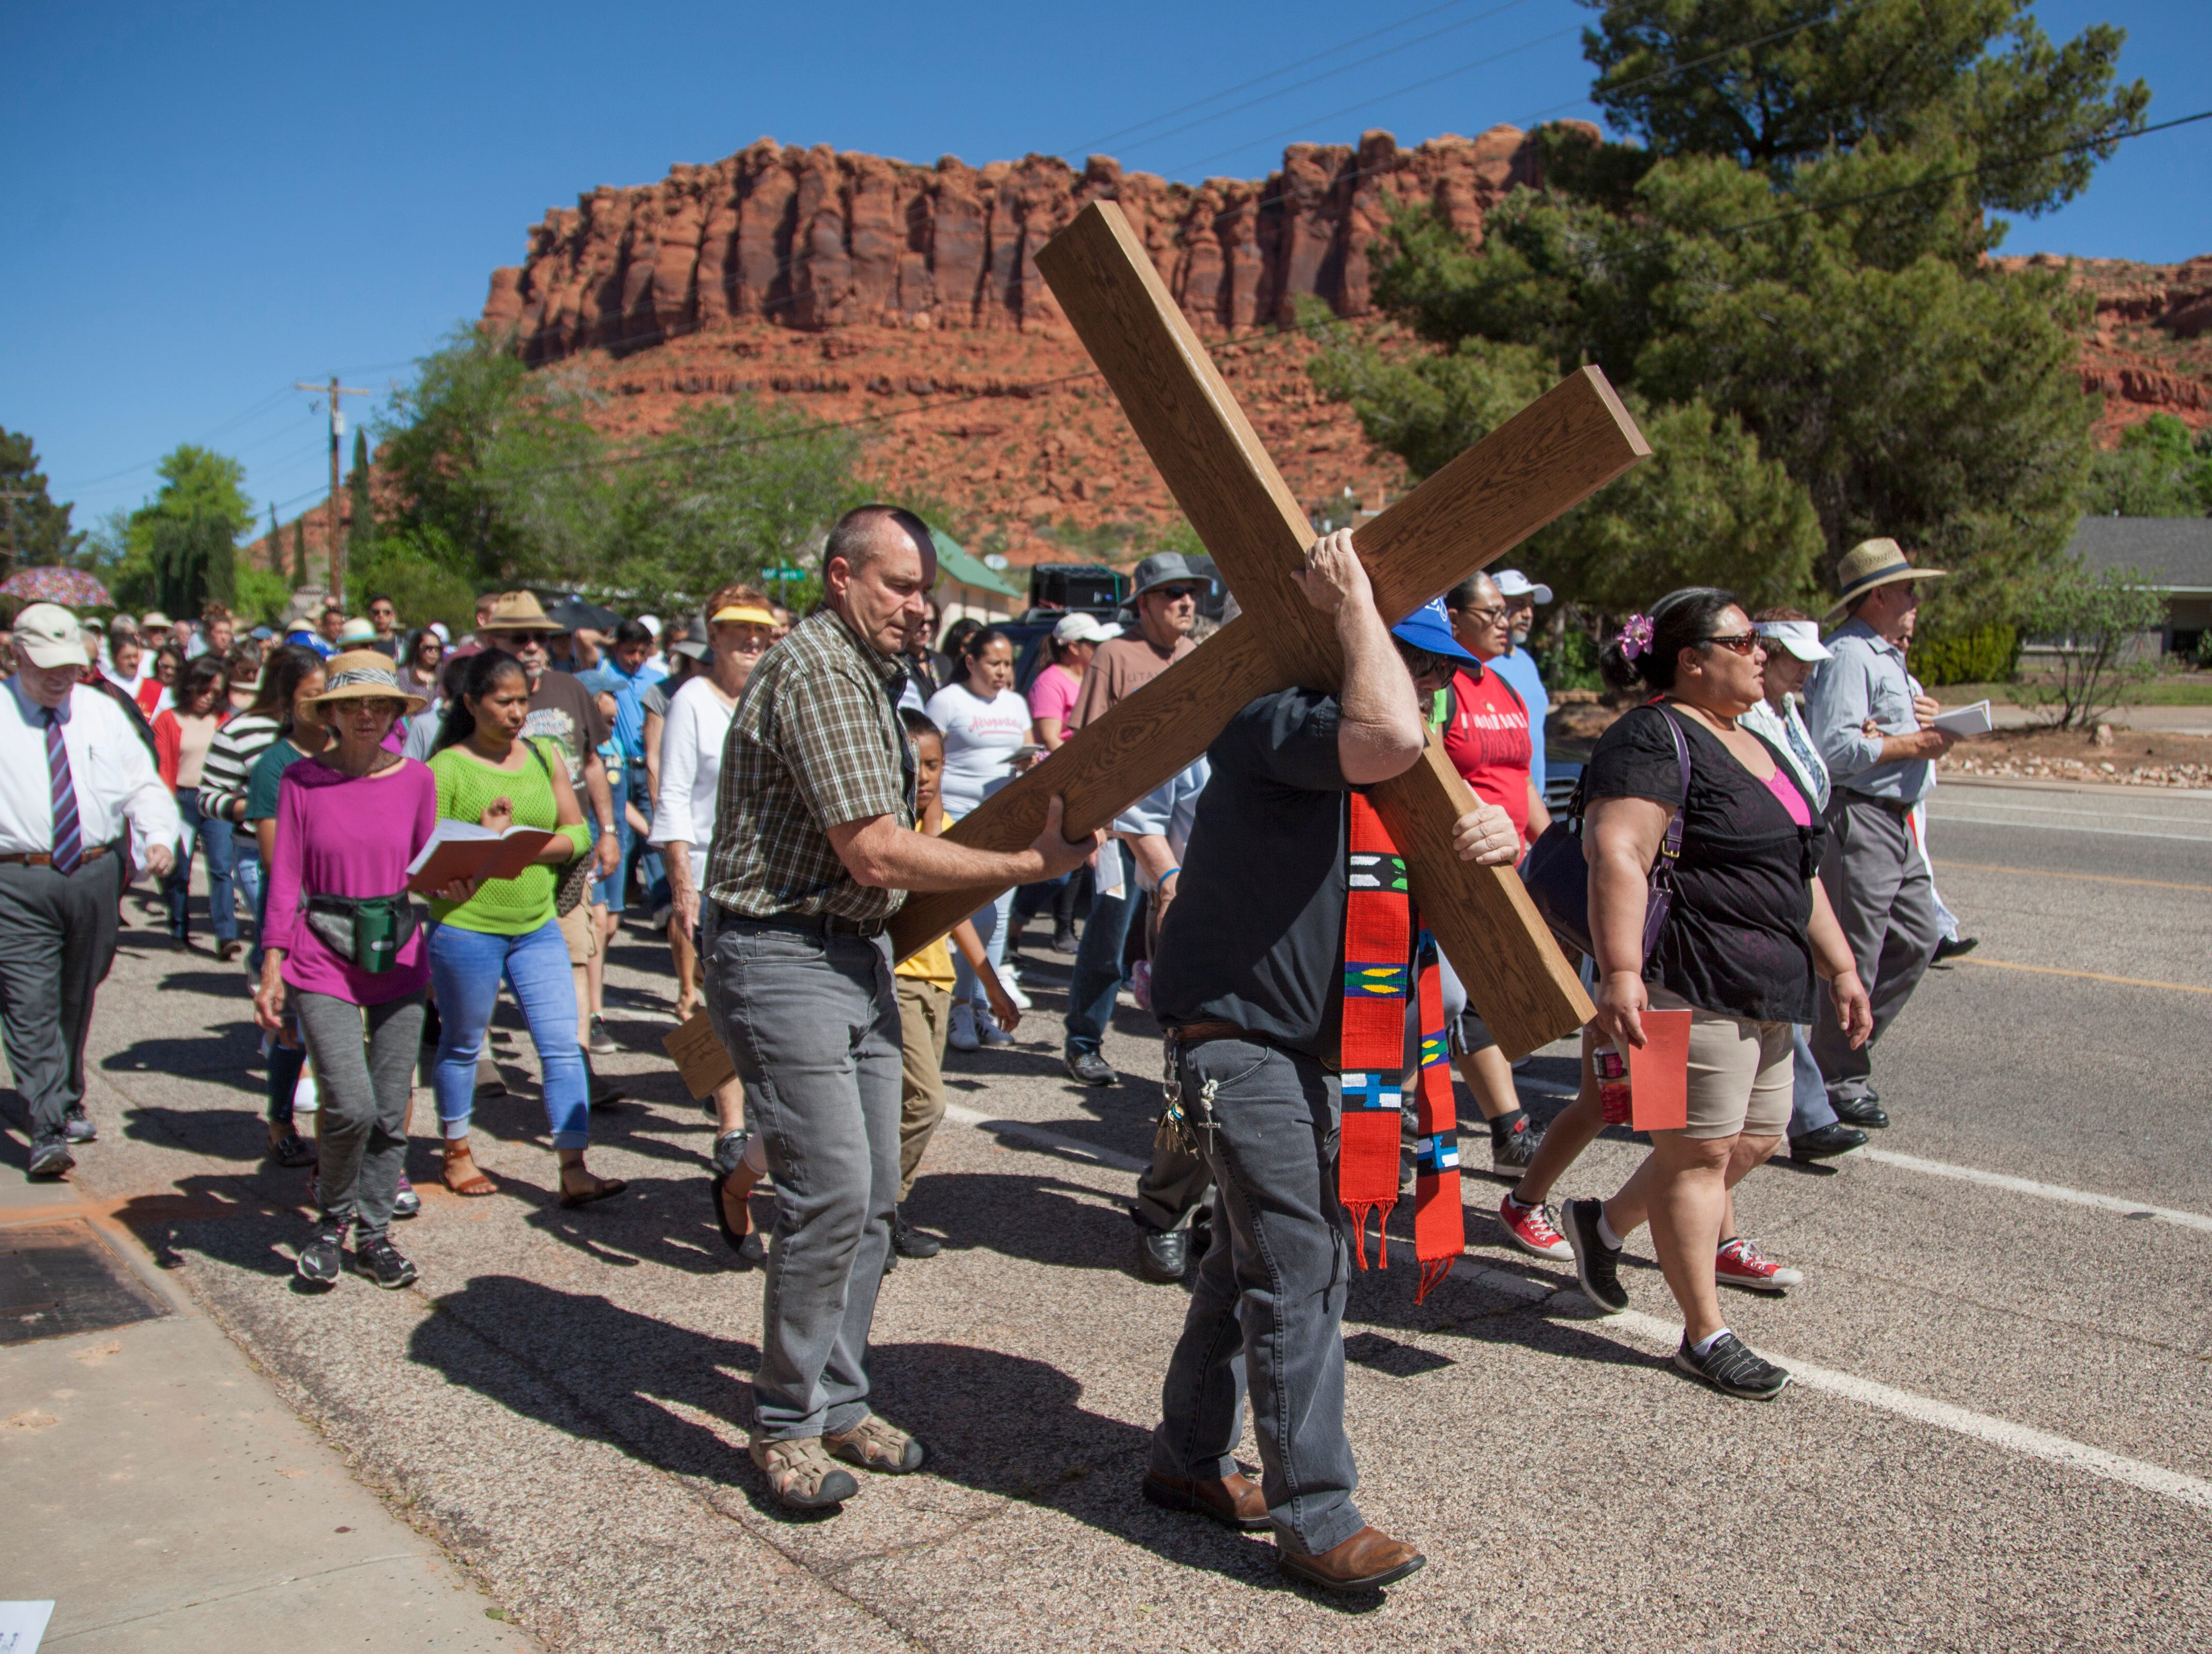 Christians from various groups gather at Sandtown Park for the annual Ecumenical Way of the Cross Friday, April 19, 2019.